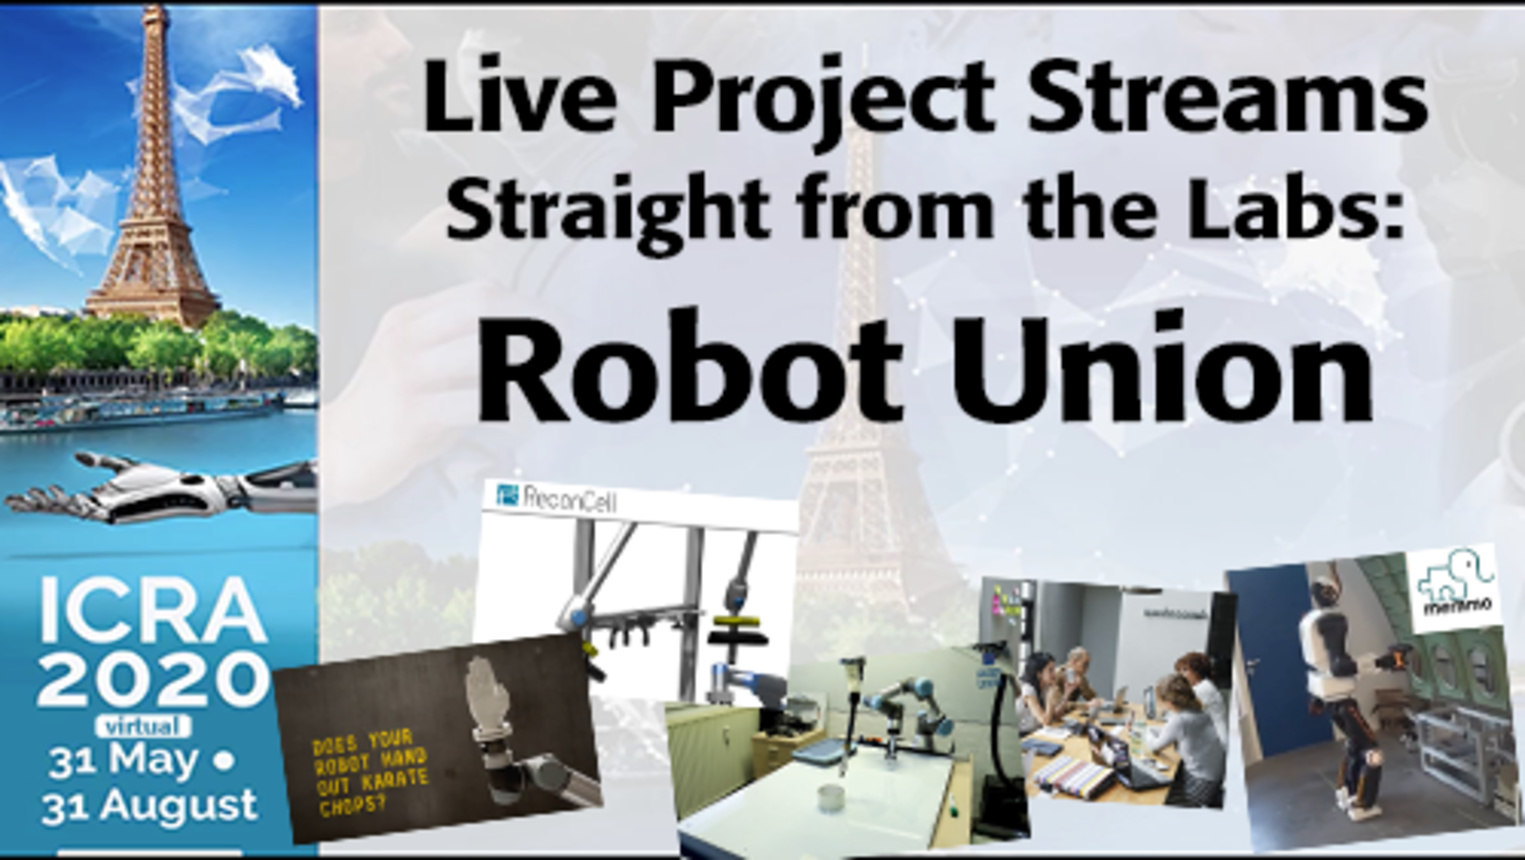 ICRA 2020-Live Project Demo: Robot Union